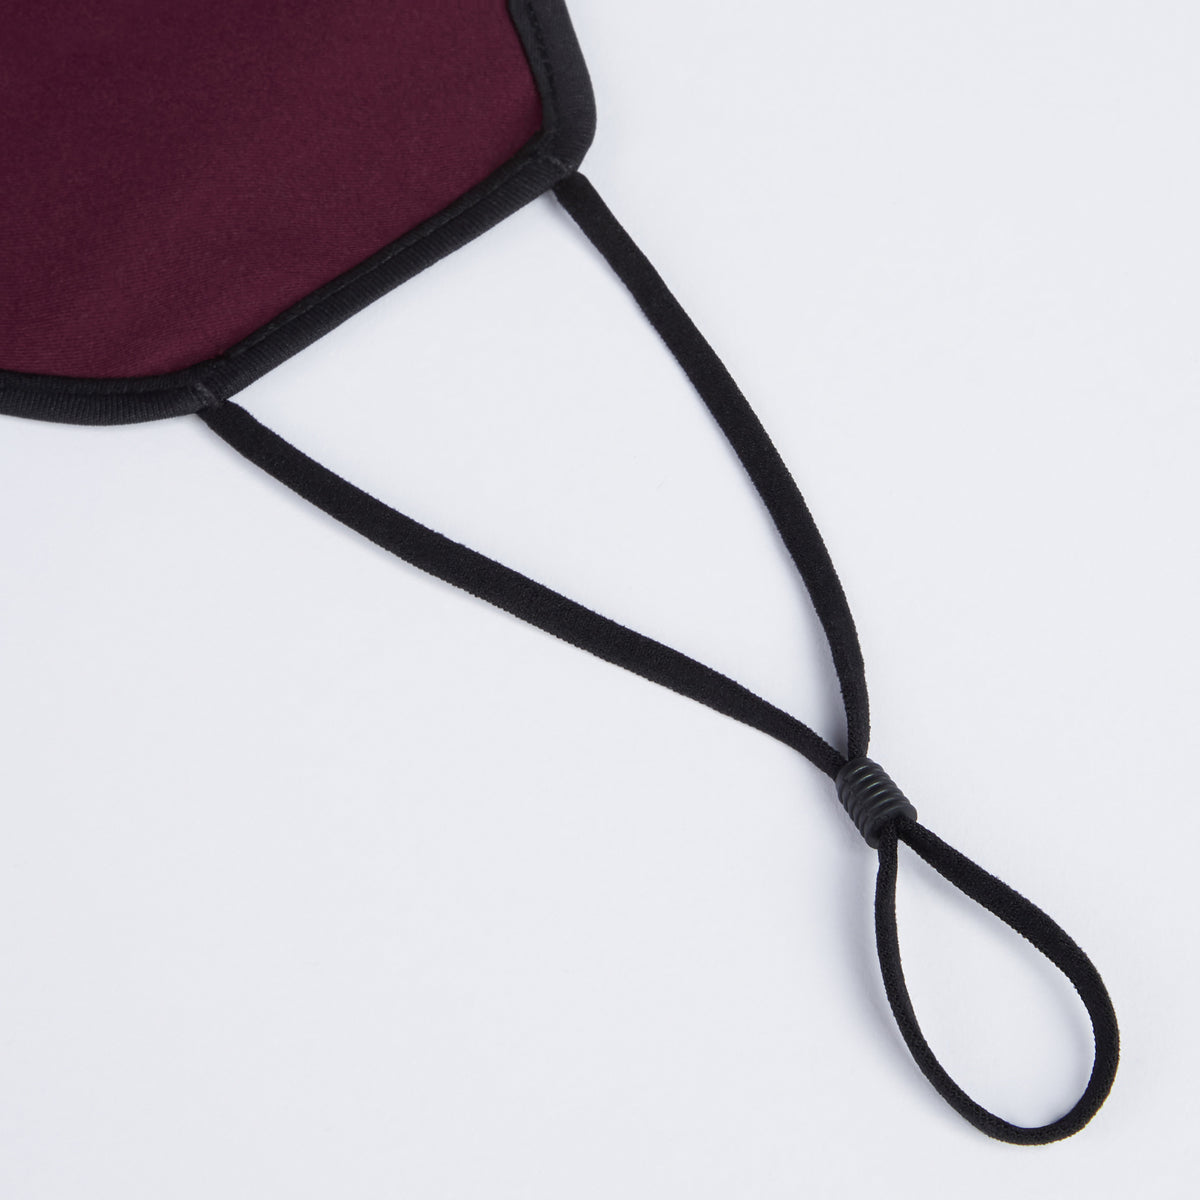 Face Mask Reusable Travel Mask with FREE Replaceable Filter - Burgundy Red with Black Trim